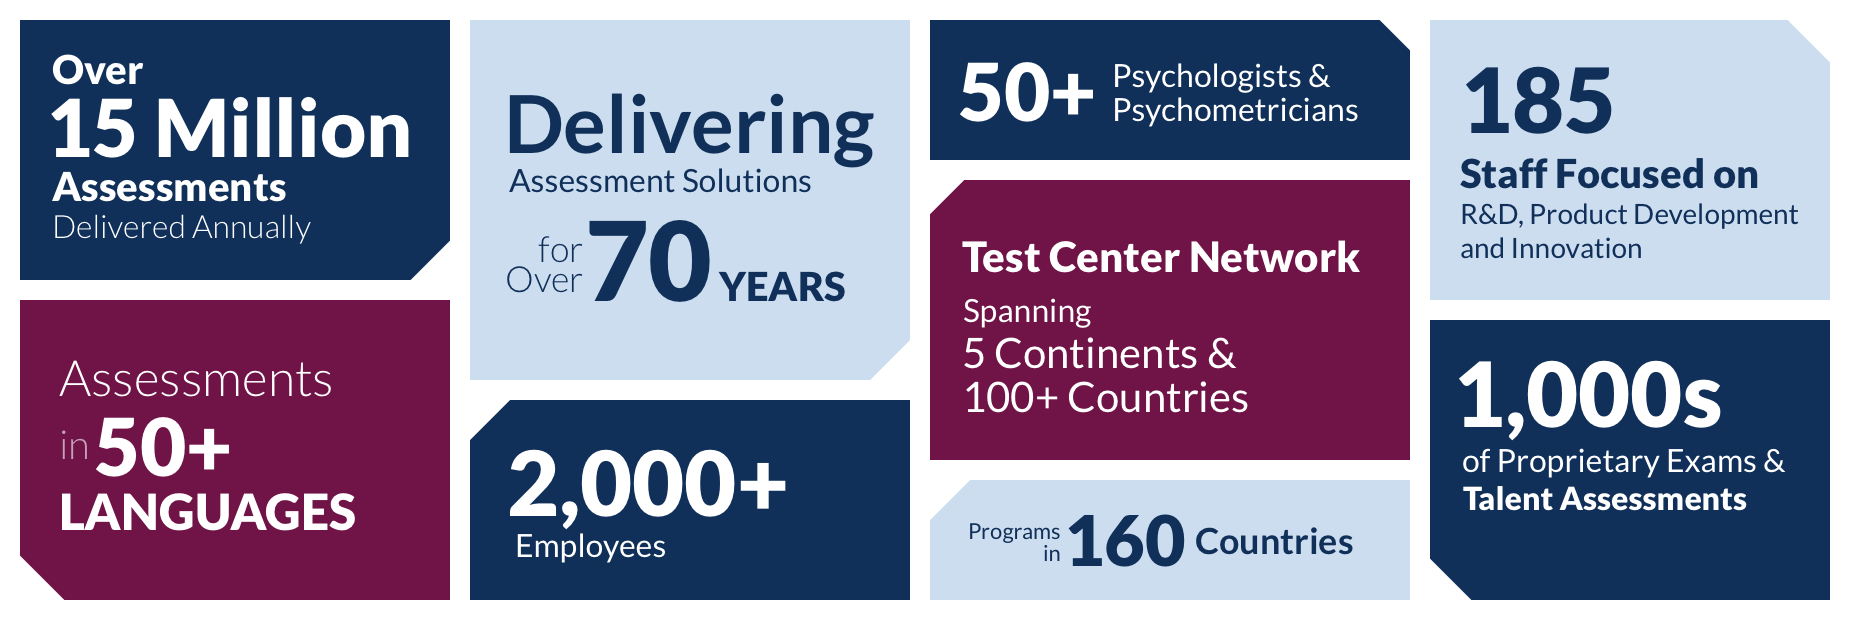 Over 13 Million Assessments Delivered Annually, Delivering Assessment Solutions for Over 70 Years, 50+ Psychologists and Psychometricians, 185 Staff Focused on Research & Development, Product Development and Innovation, Assessments in 50+ Languages, 2000+ Employees, Test Center Network Spanning 5 Continents and 100+ Countries, Programs in 160 Countries, 1000s of Proprietary Exams and Talent Assessments